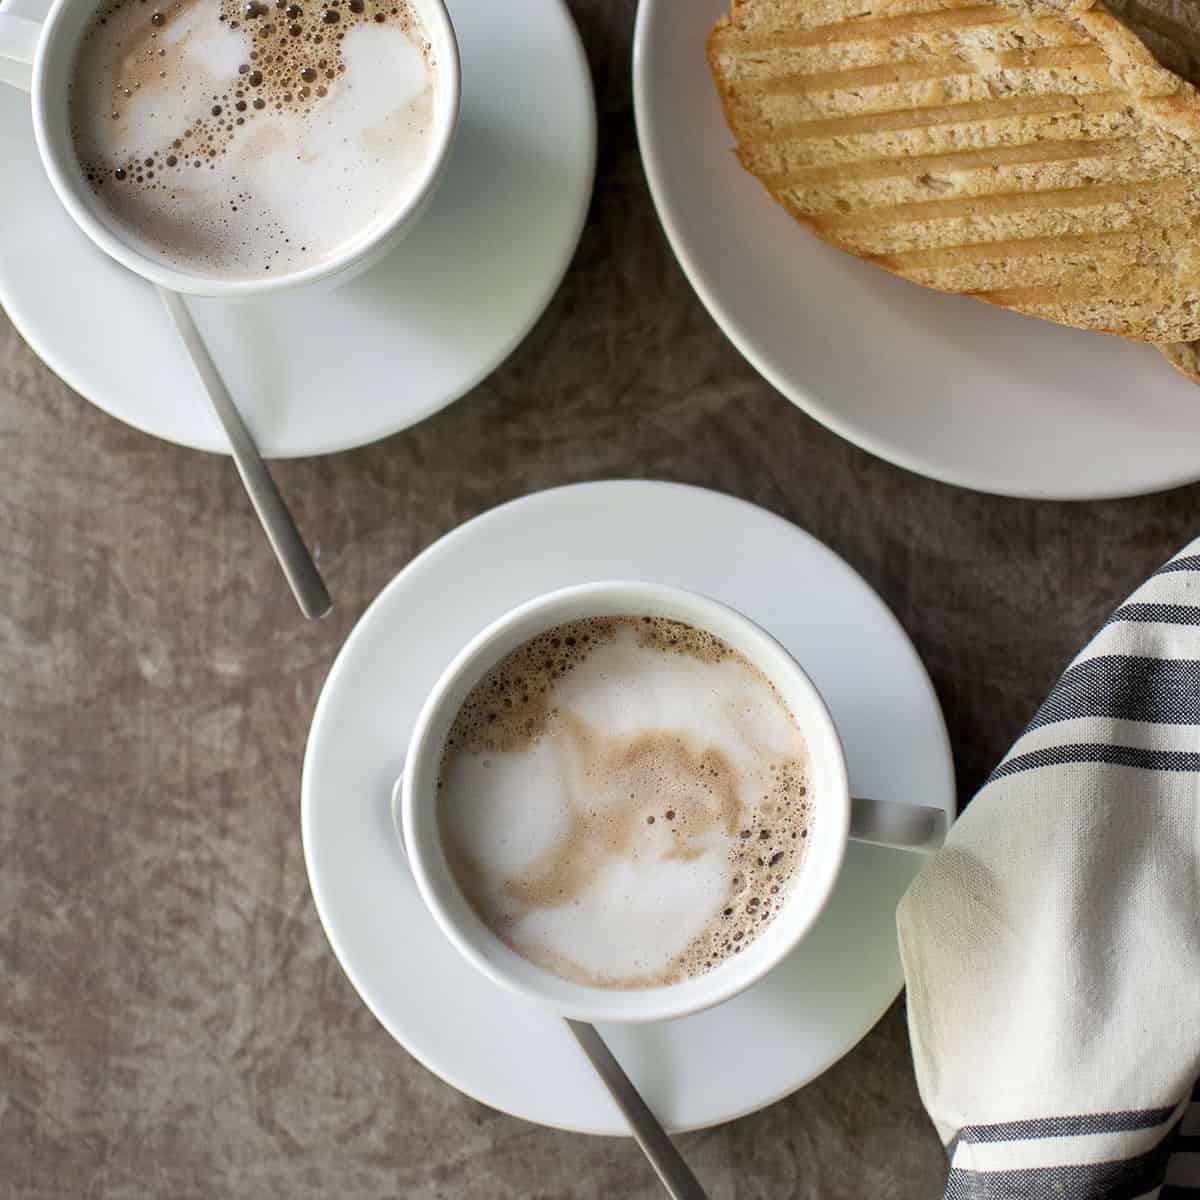 Two white cups with espresso and toast in the background